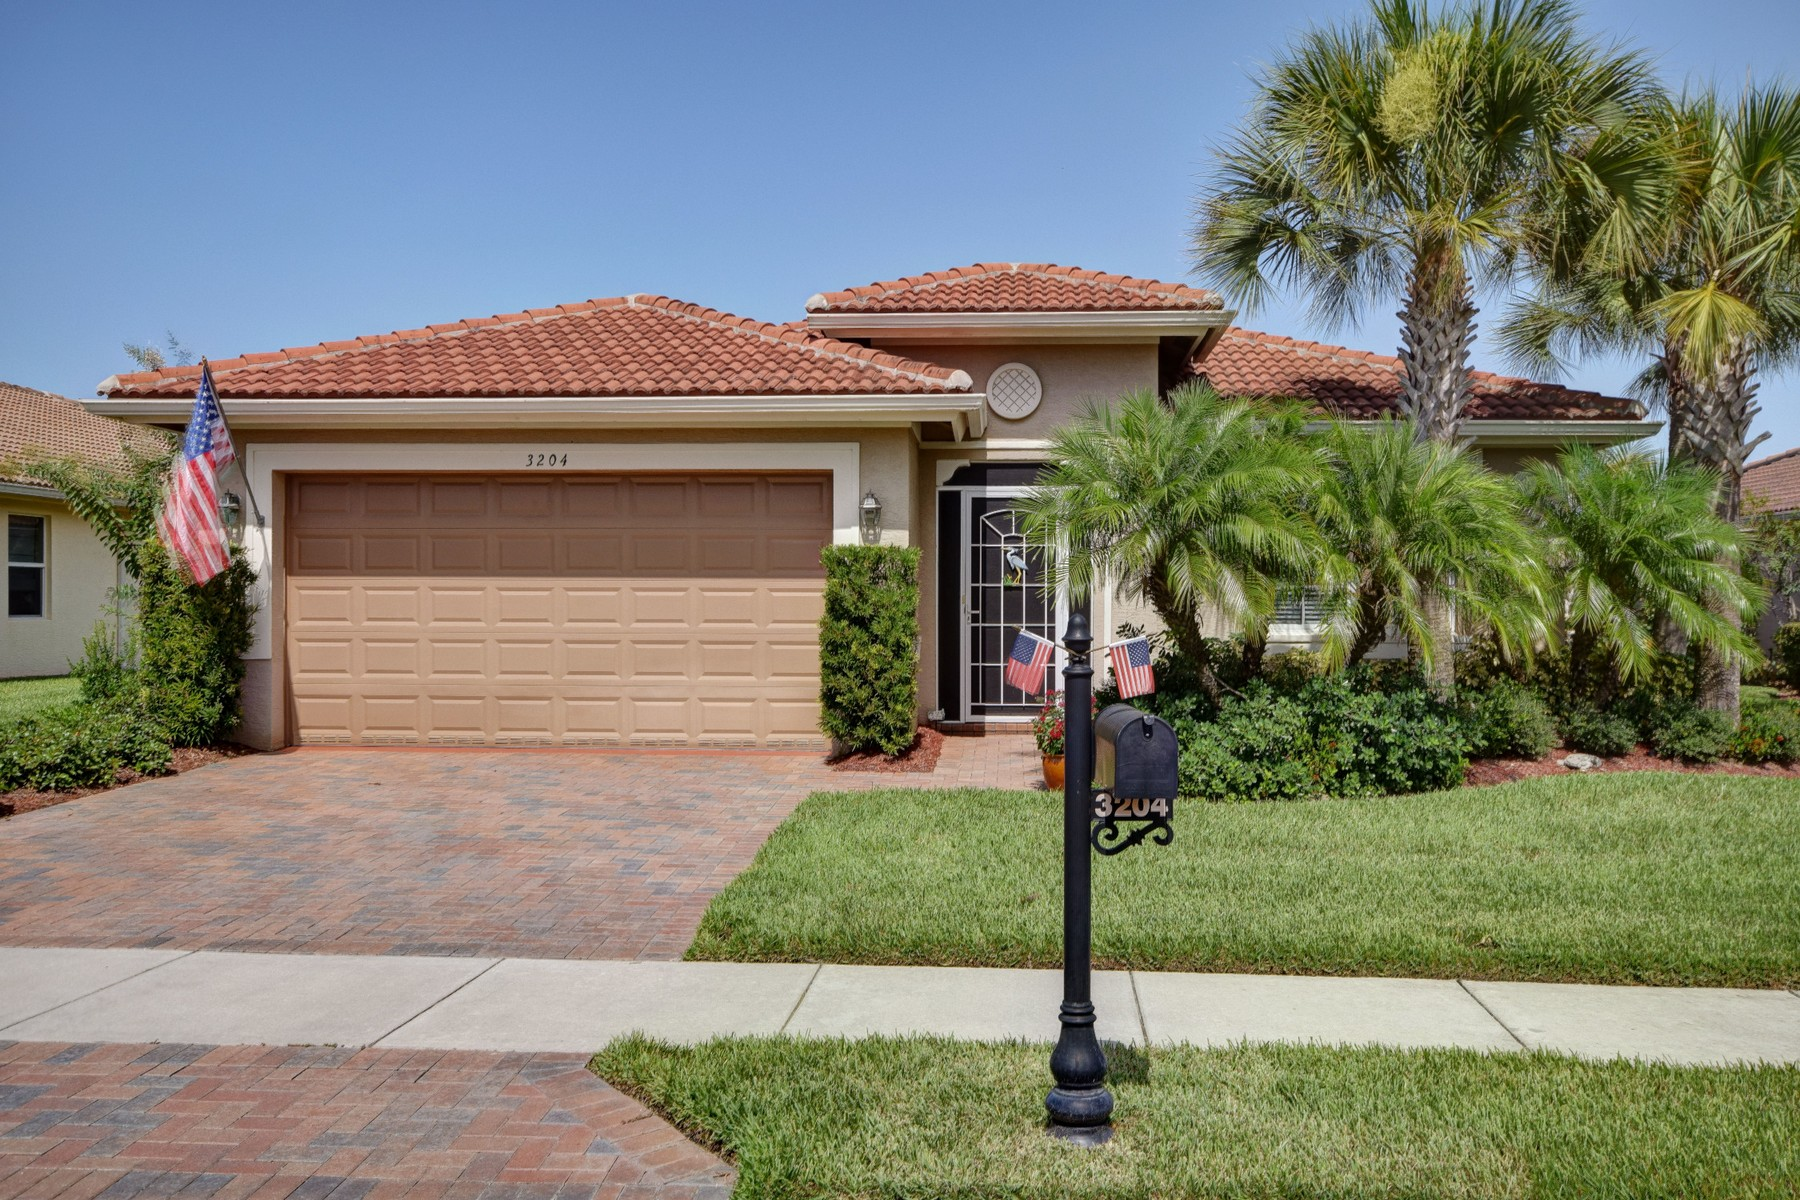 Single Family Home for Sale at Savvy lakefront home in Woodfield 3204 Astor Avenue Vero Beach, Florida 32966 United States